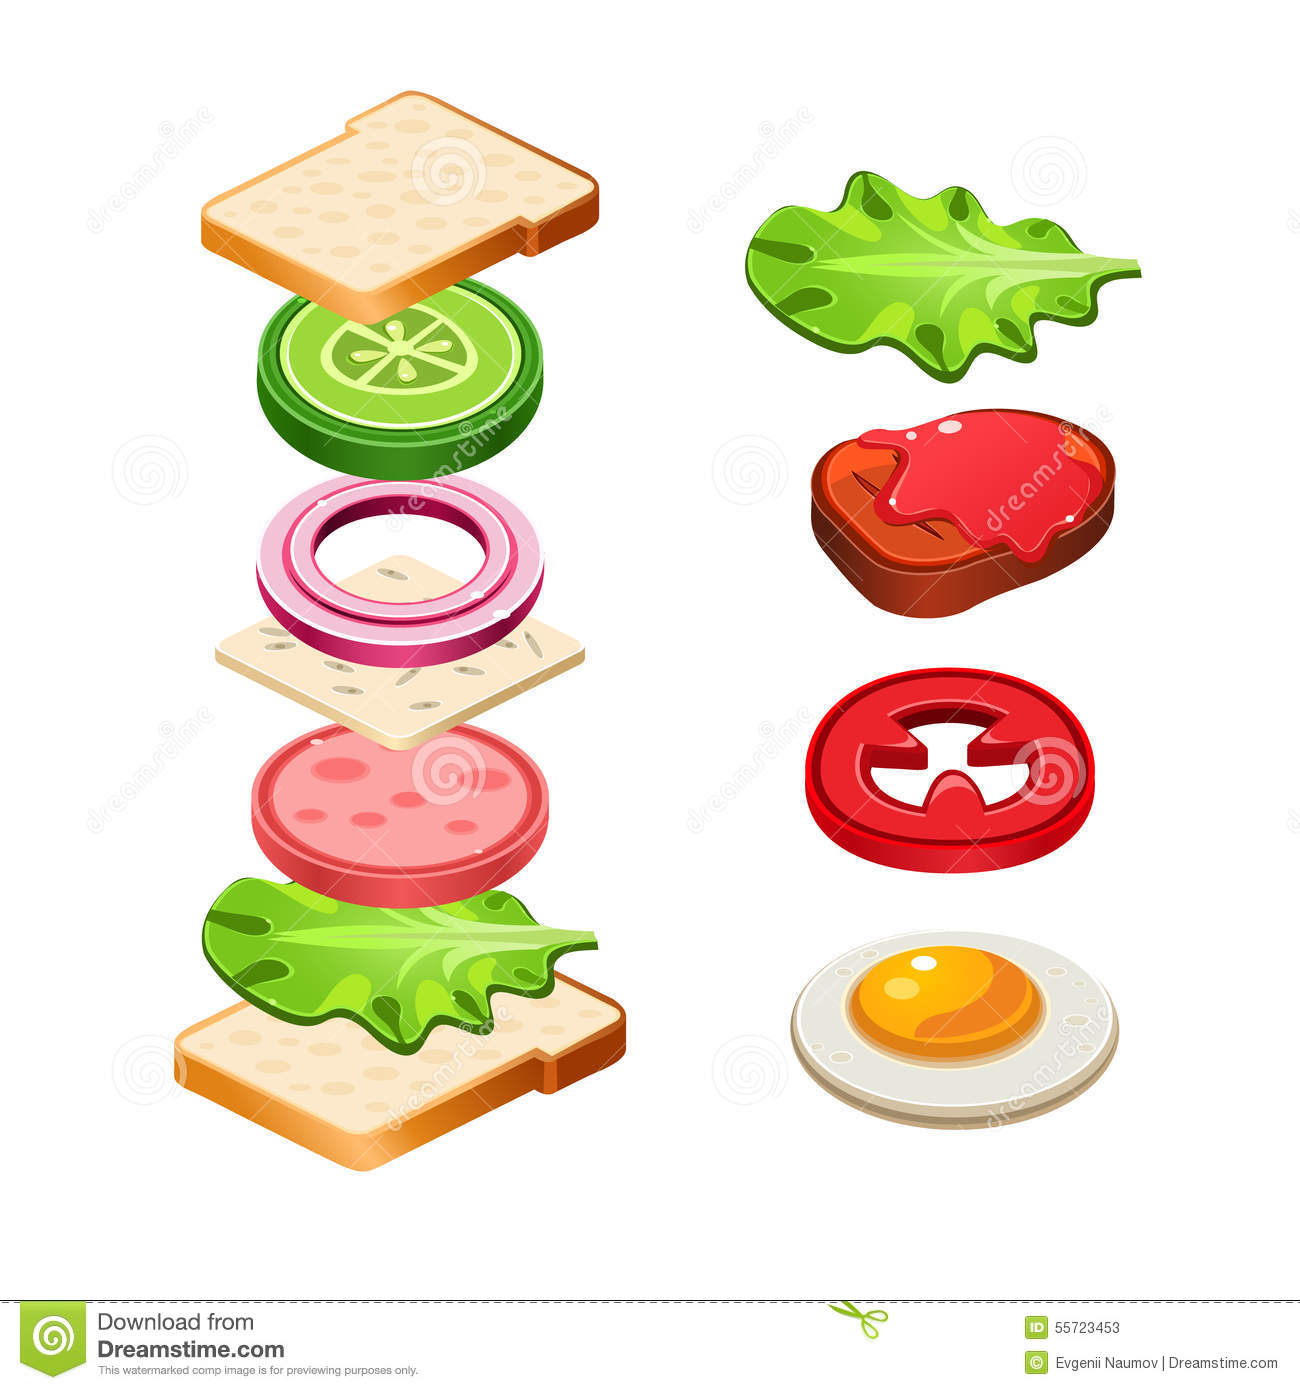 Sandwich Ingre Nts Food Illustration Royalty Free